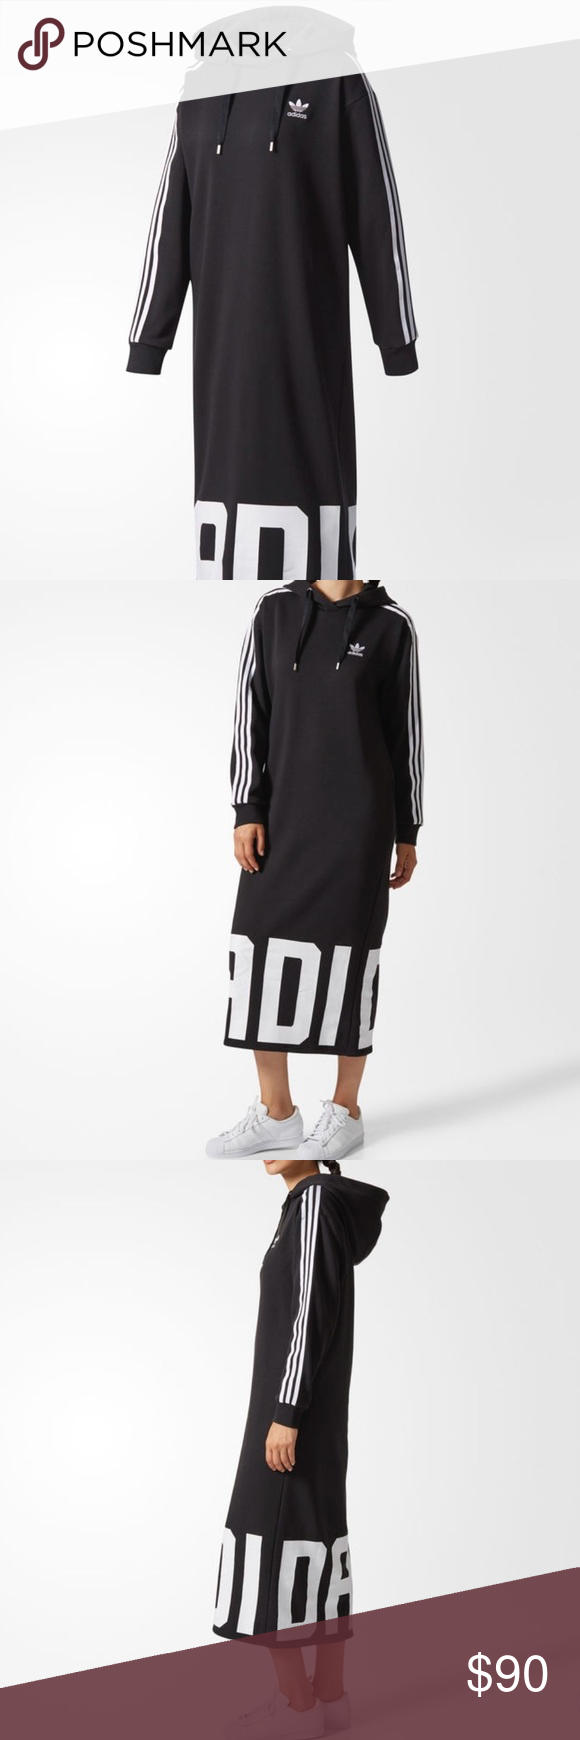 timeless design 002d3 9ab94 New ADIDAS ORIGINALS BOLD AGE HOODIE DRESS Brand new with tags. adidas  Dresses